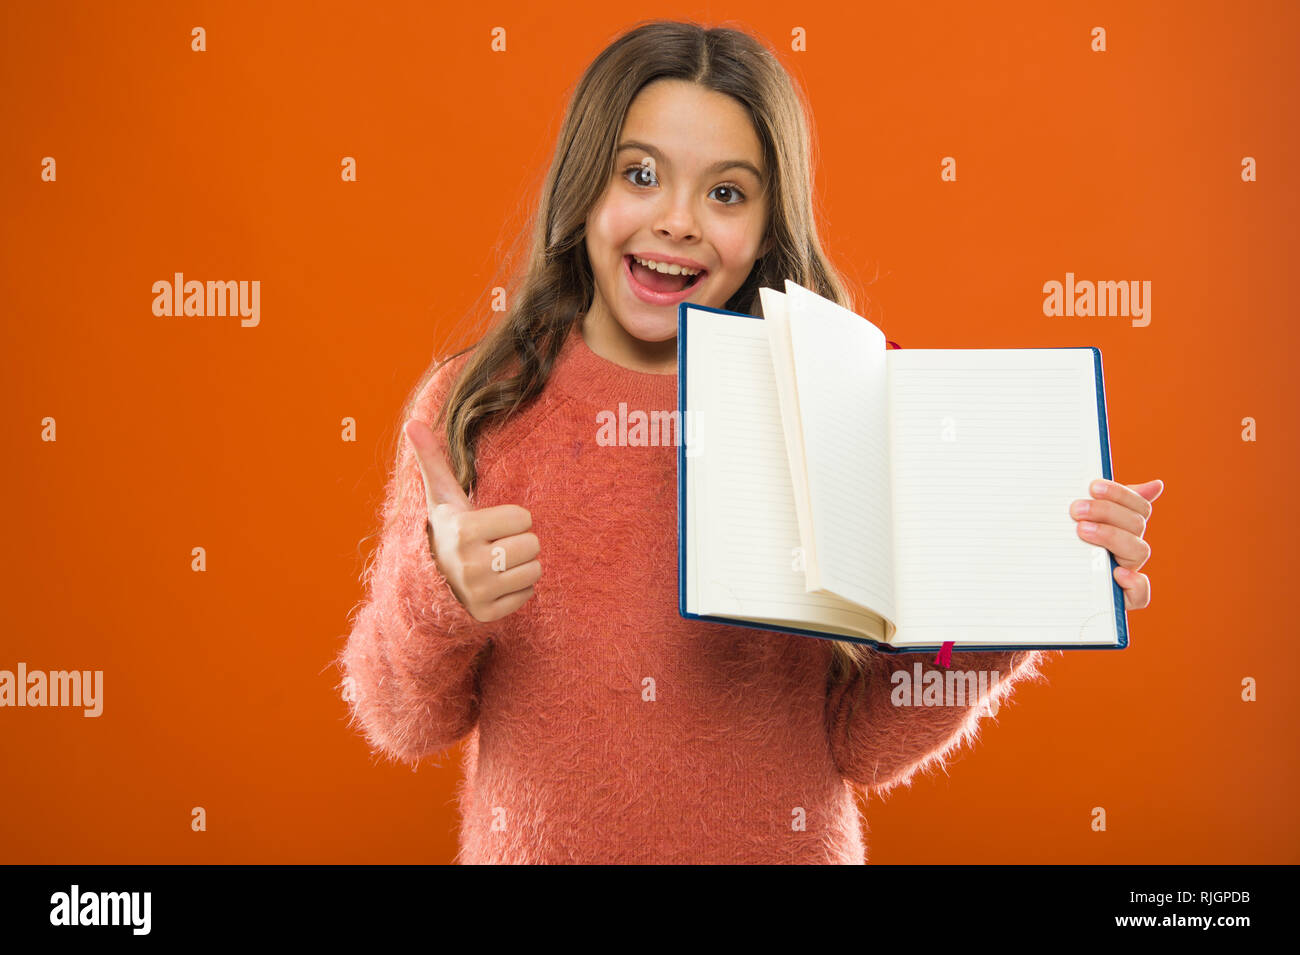 Starting to learn more. Girl hold book orange background. Child show open pages of book or notepad. Book store concept. Free books available to read. Childhood literature. Development and education. - Stock Image